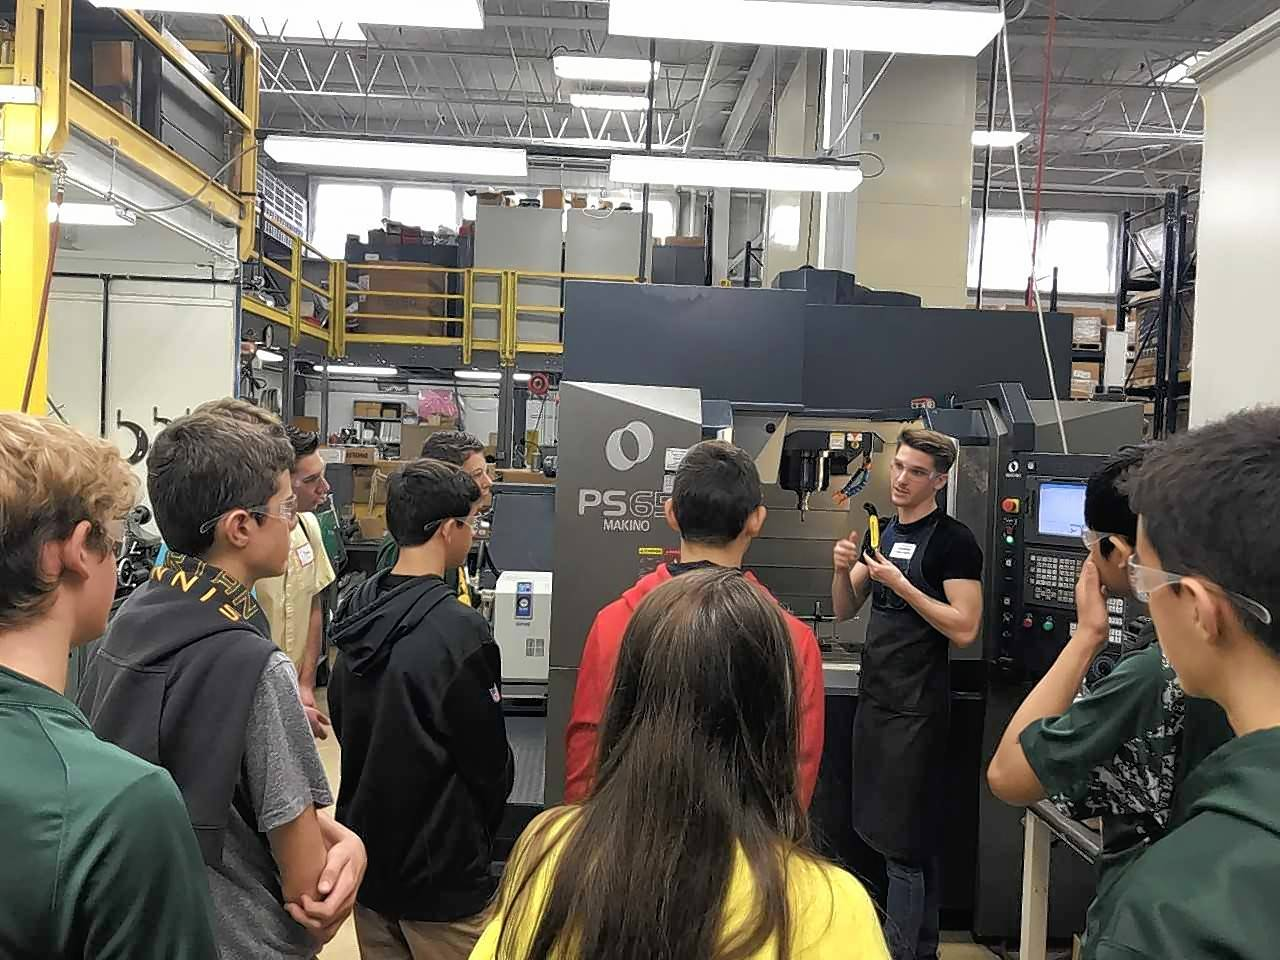 Rogan Molding Technologies, recently celebrated Manufacturing Day by inviting Glenbrook North High School students to explore careers in plastics and manufacturing.